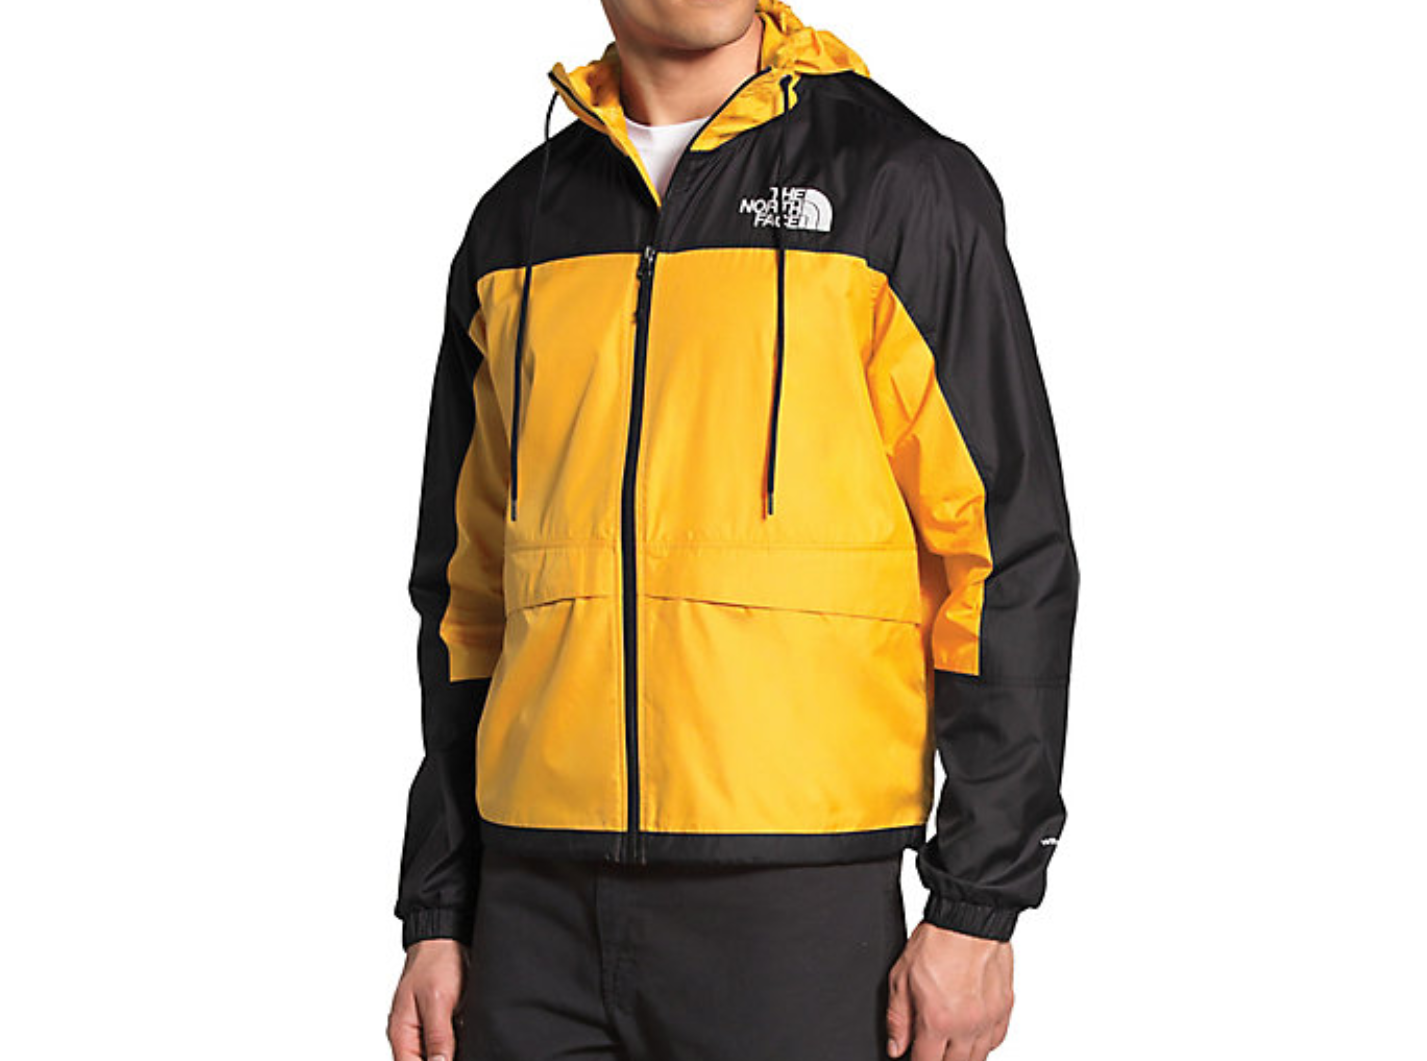 The North Face Men's HMLYN Wind Shell is Only $52.99